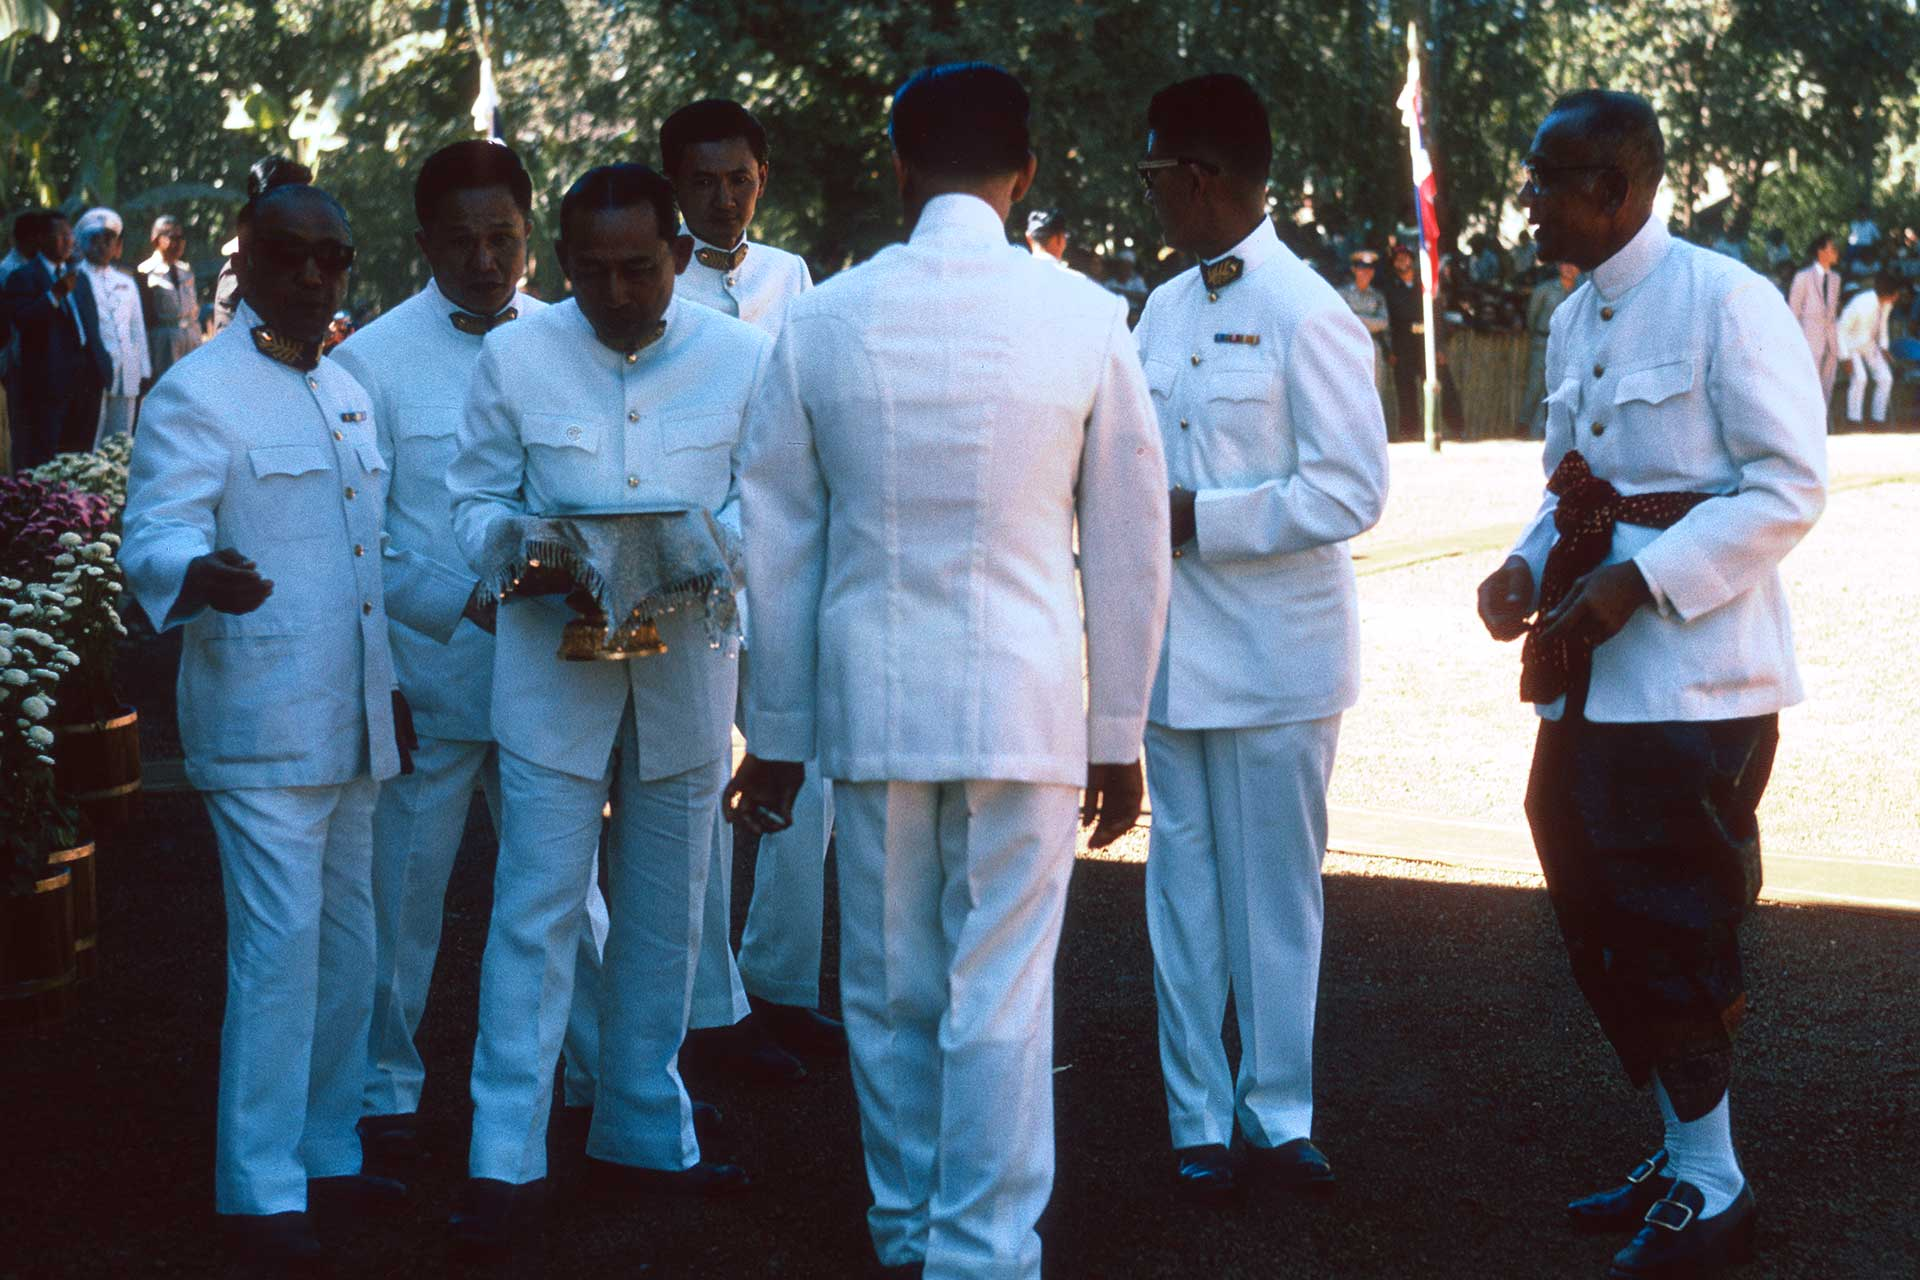 Men in white uniforms carry a ceremonial vessel